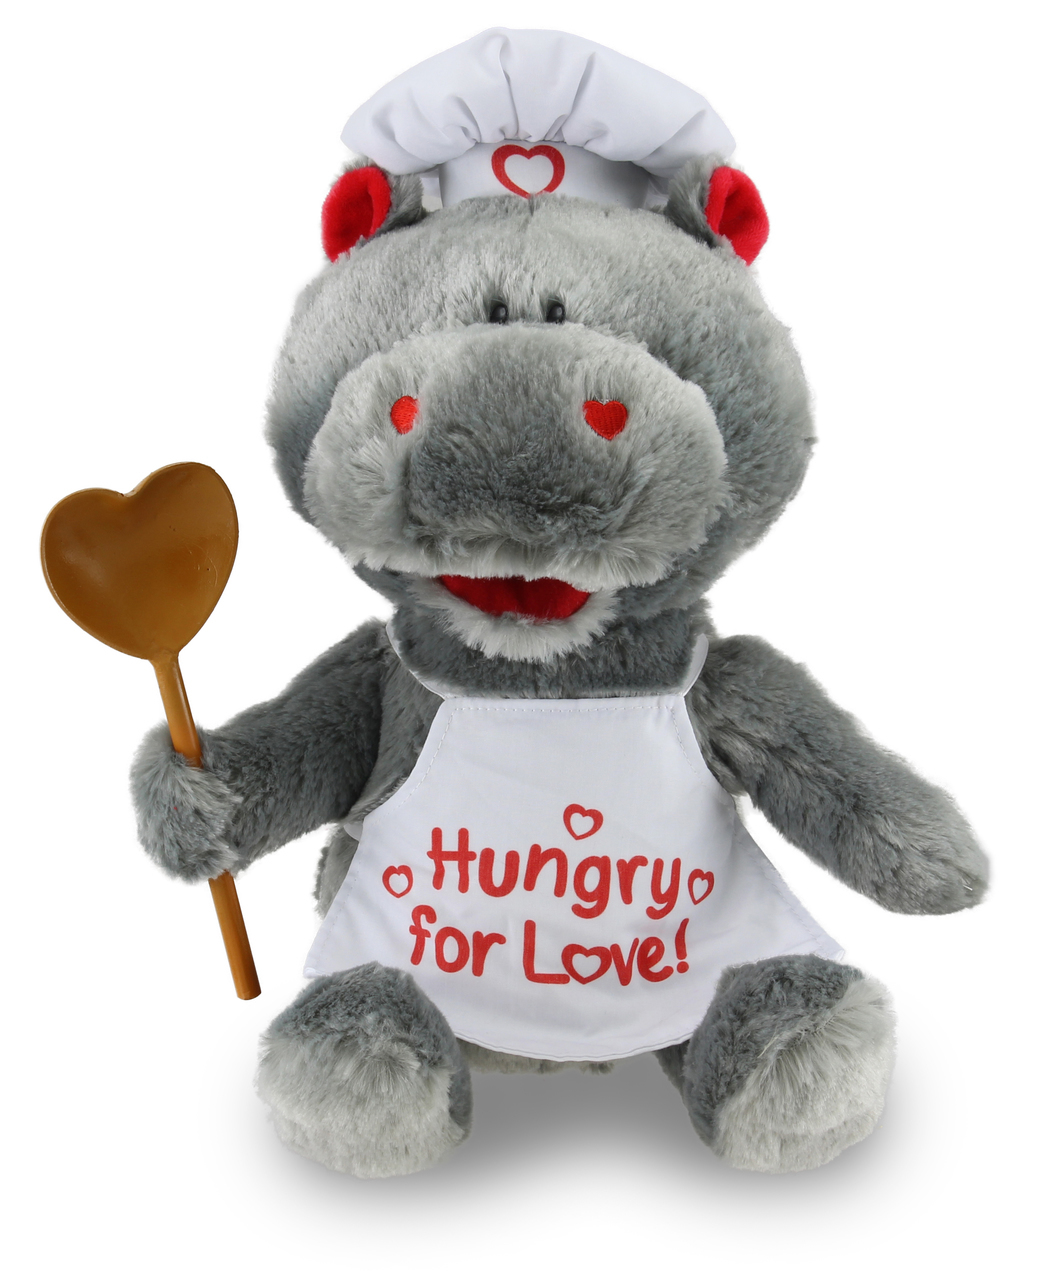 Toys For Valentines Day : Cuddle barn animated plush toy valentine s day hot for you